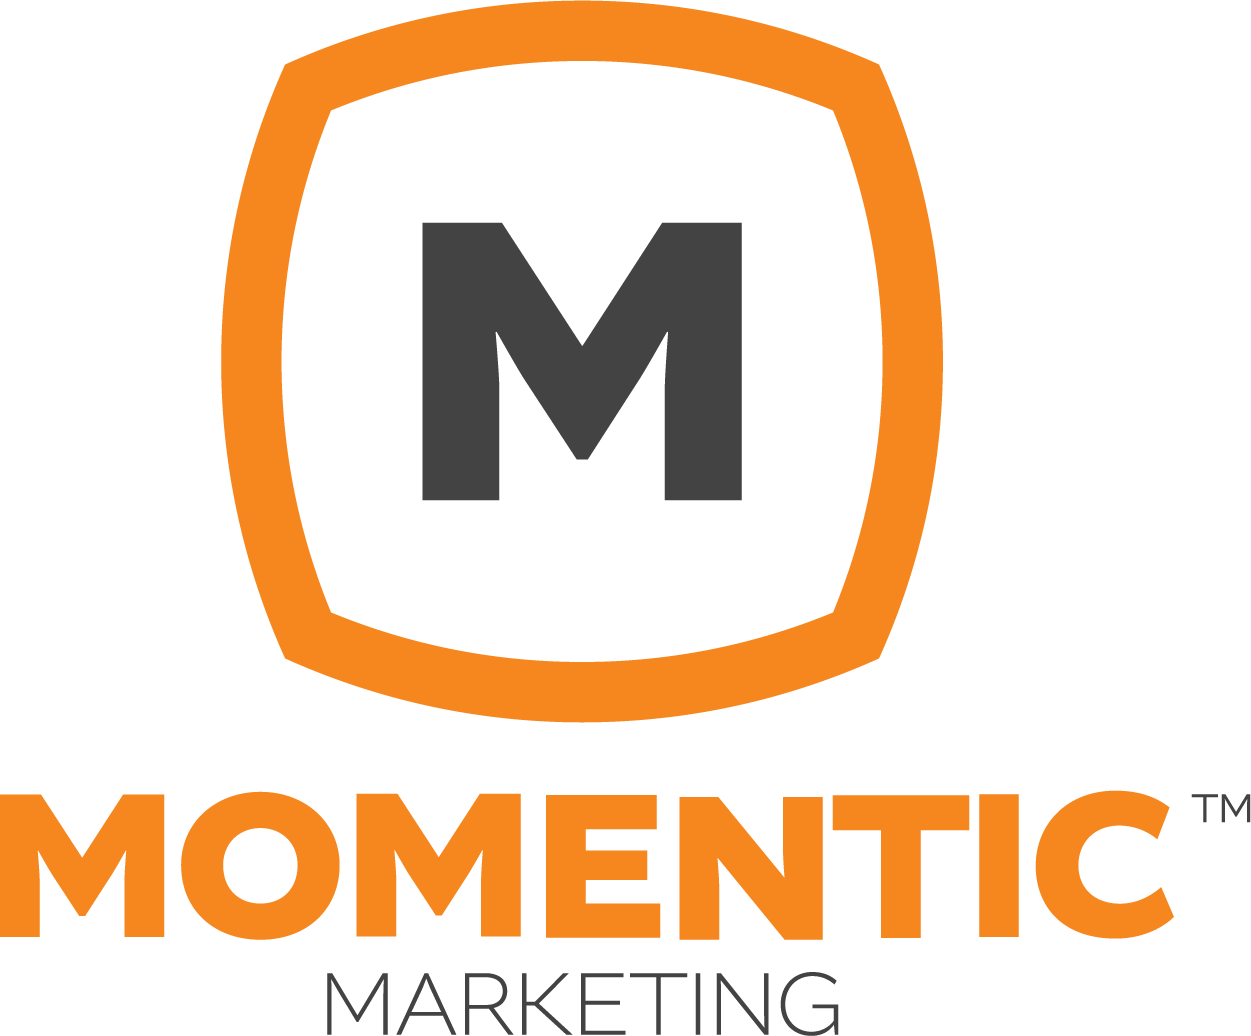 Momentic Marketing